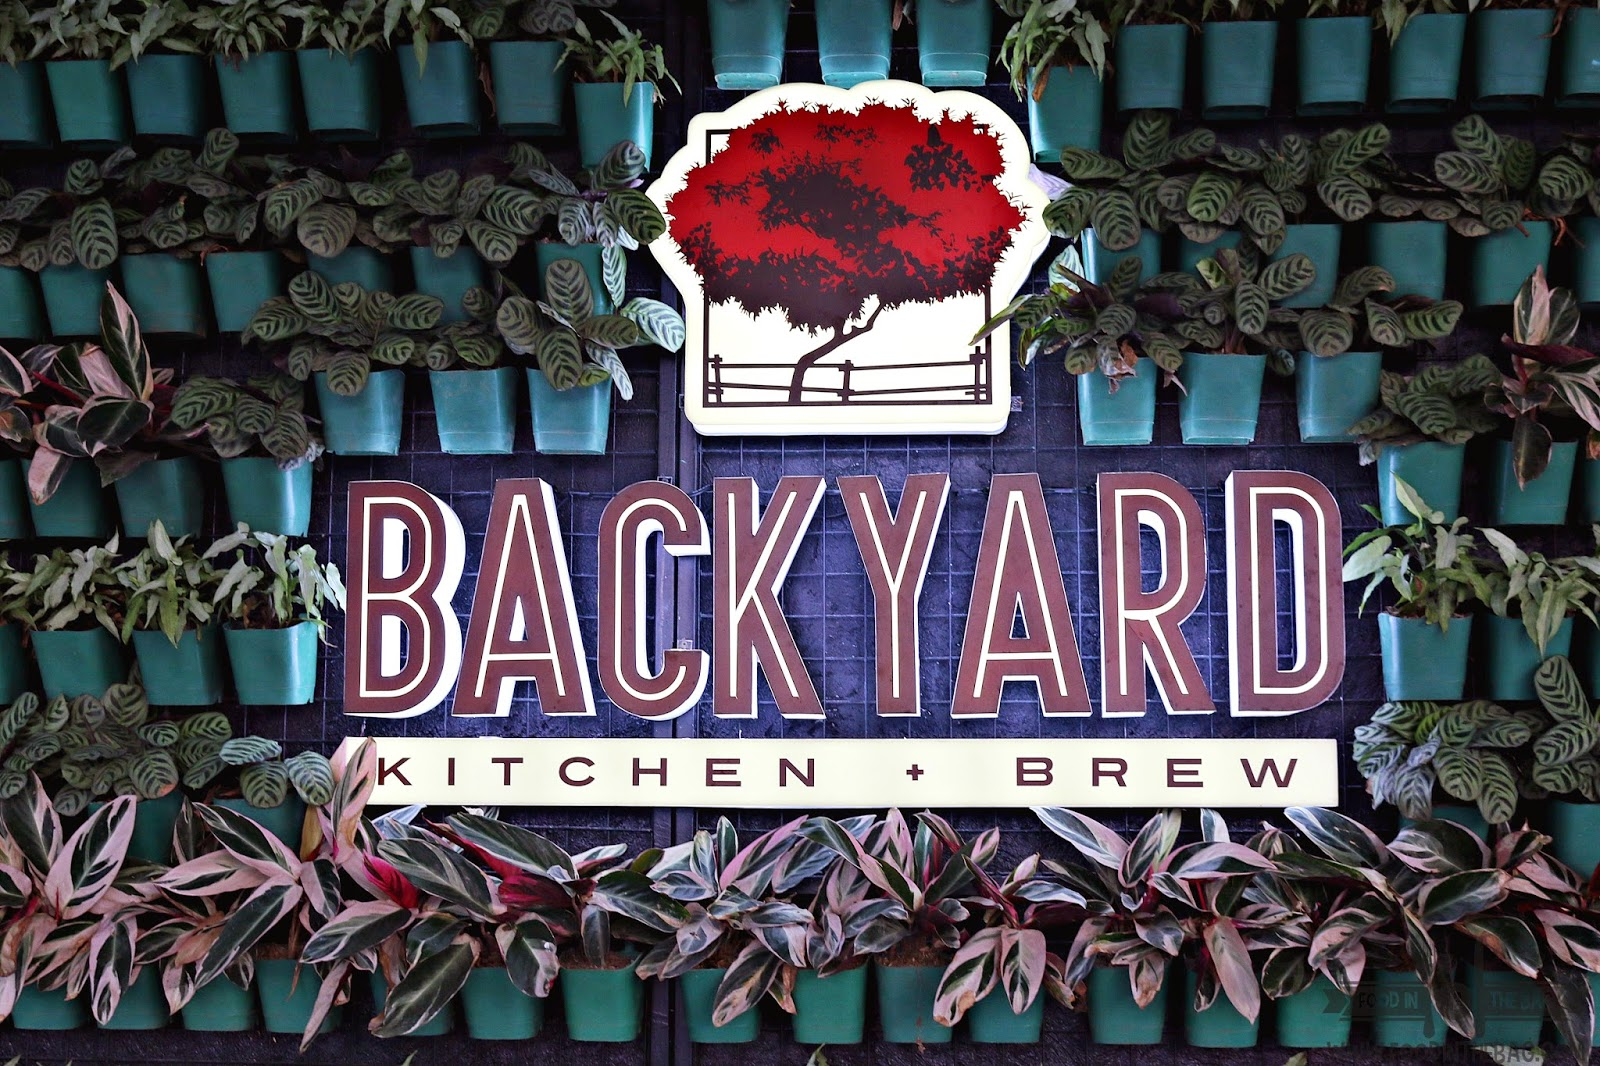 backyard kitchen and brew in up town center food in the bag